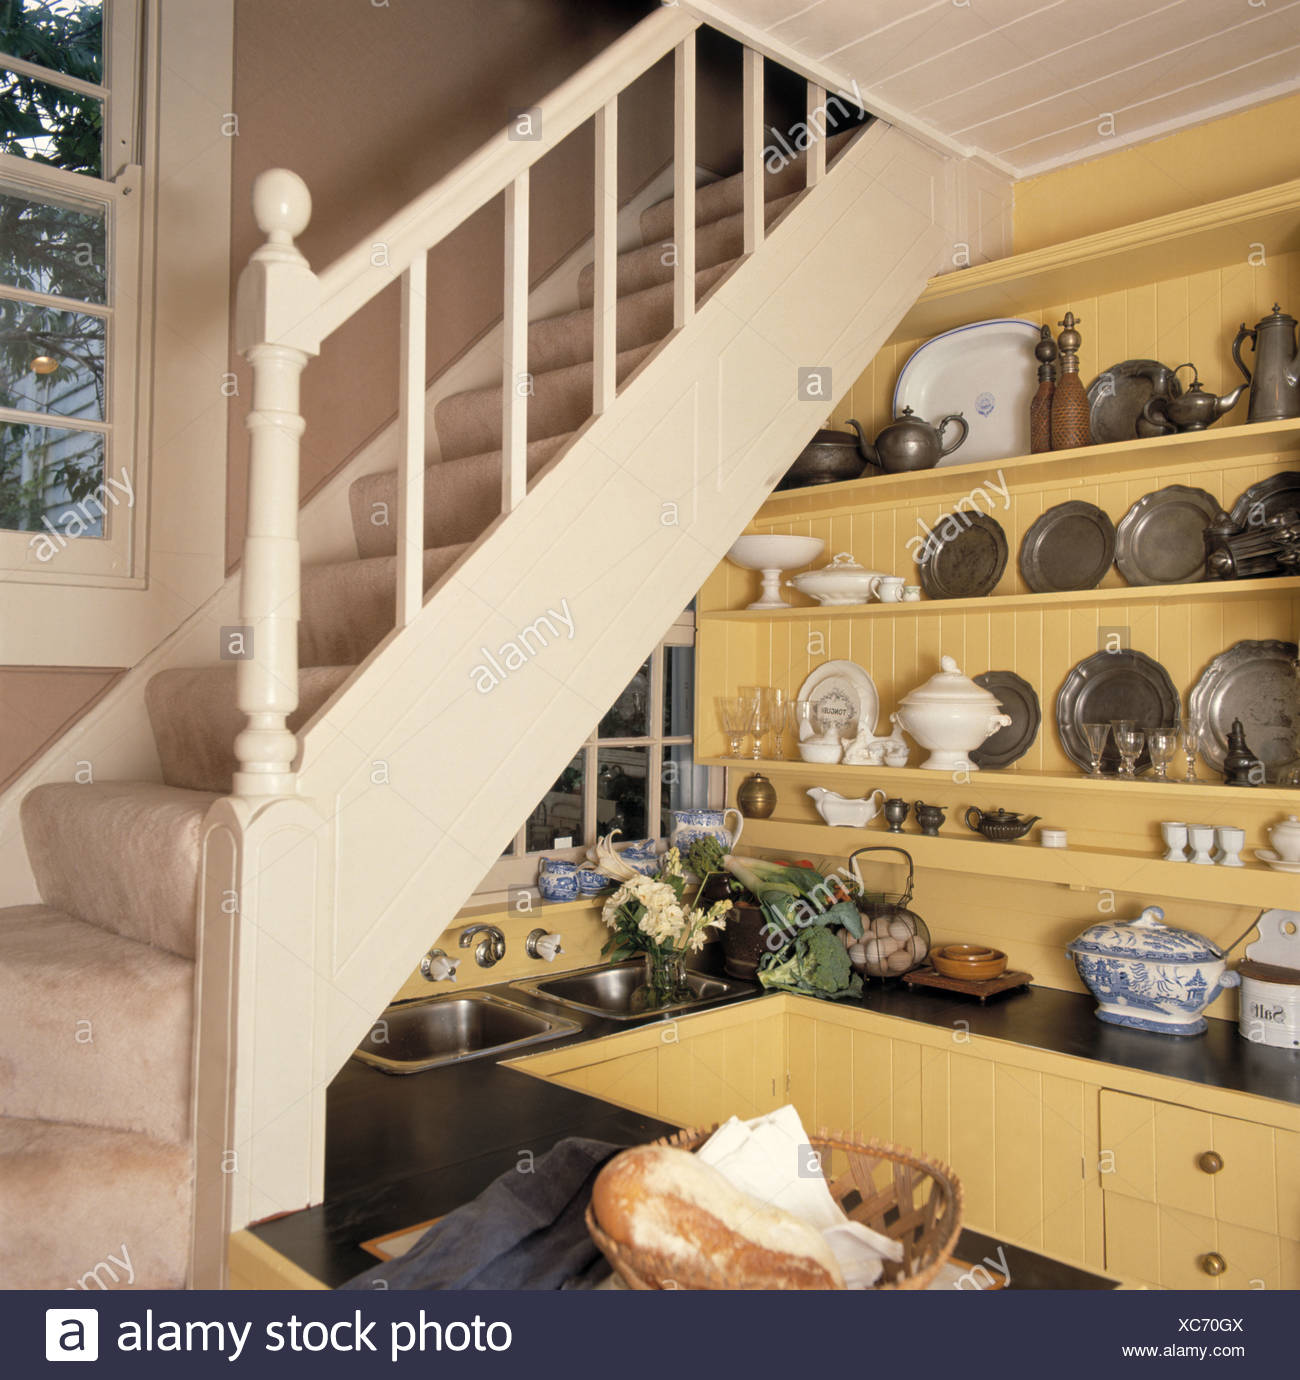 Pewter Plates On Shelves Of Small Yellow Kitchen Below Cream Staircase In  Traditional Hall